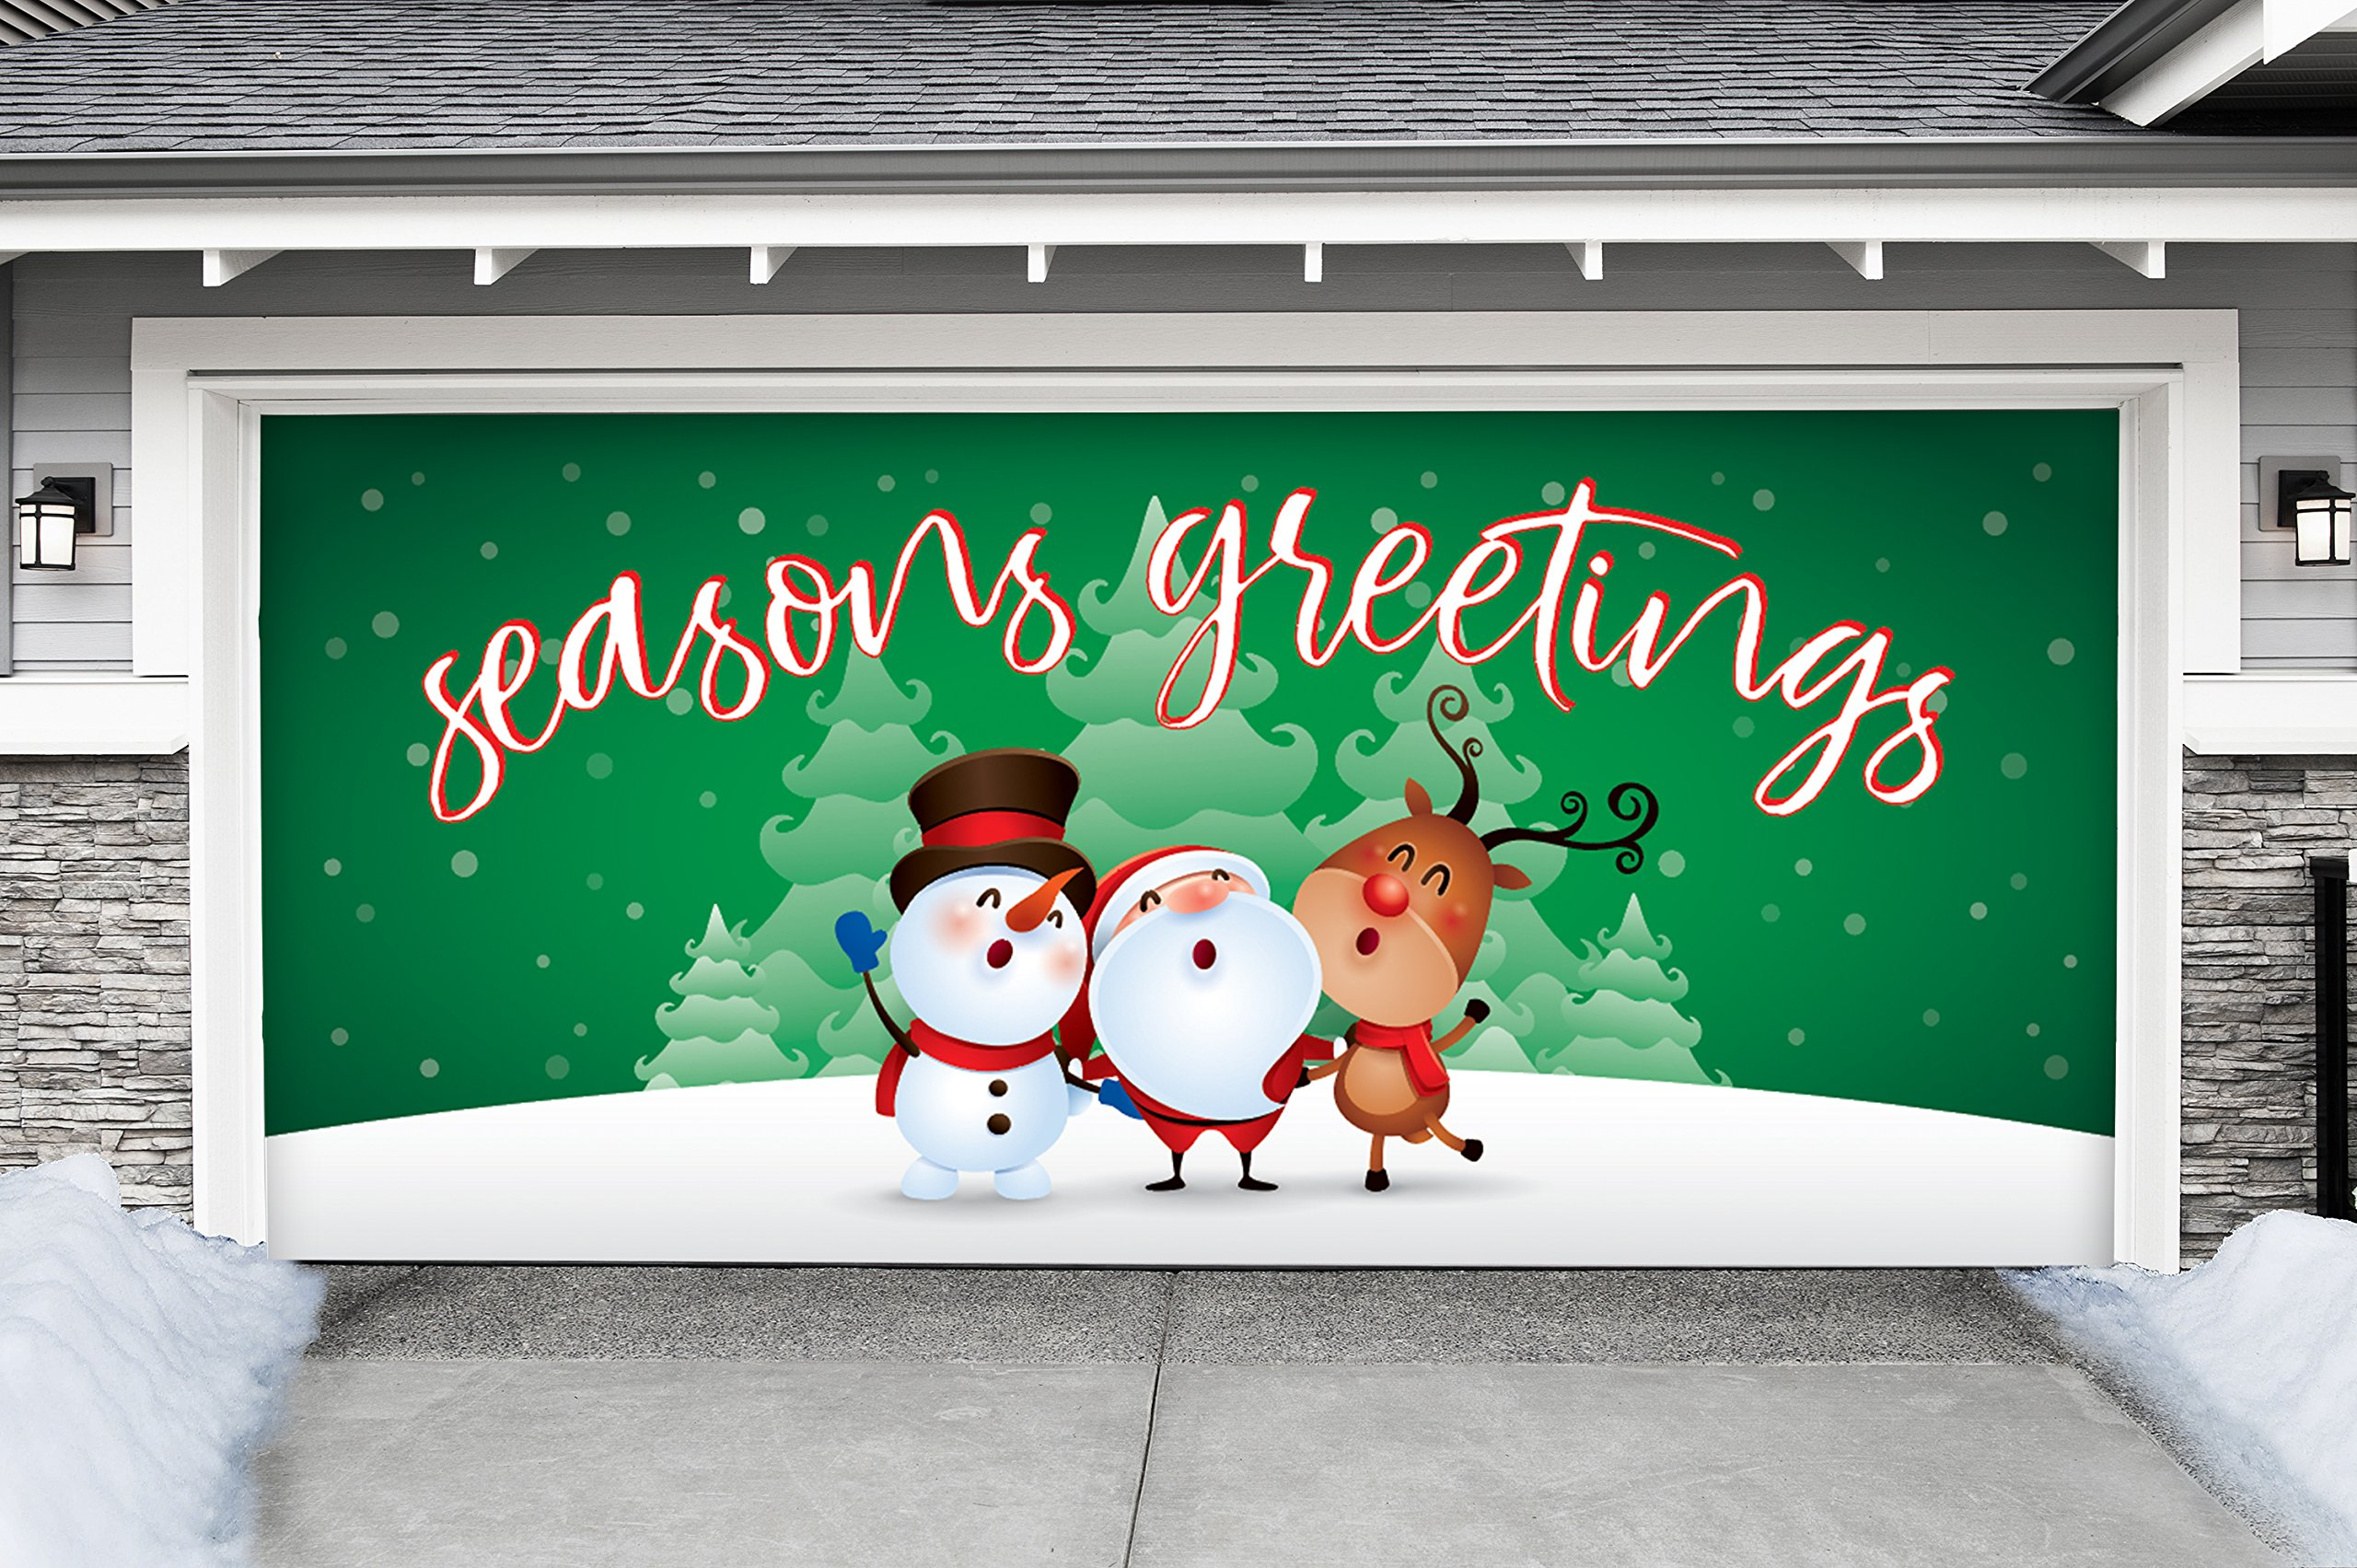 Outdoor Christmas Holiday Garage Door Banner Cover Mural Décoration - Christmas Characters Seasons Greetings Winter - Outdoor Christmas Holiday Garage Door Banner Décor Sign 7'x16' by Victory Corps